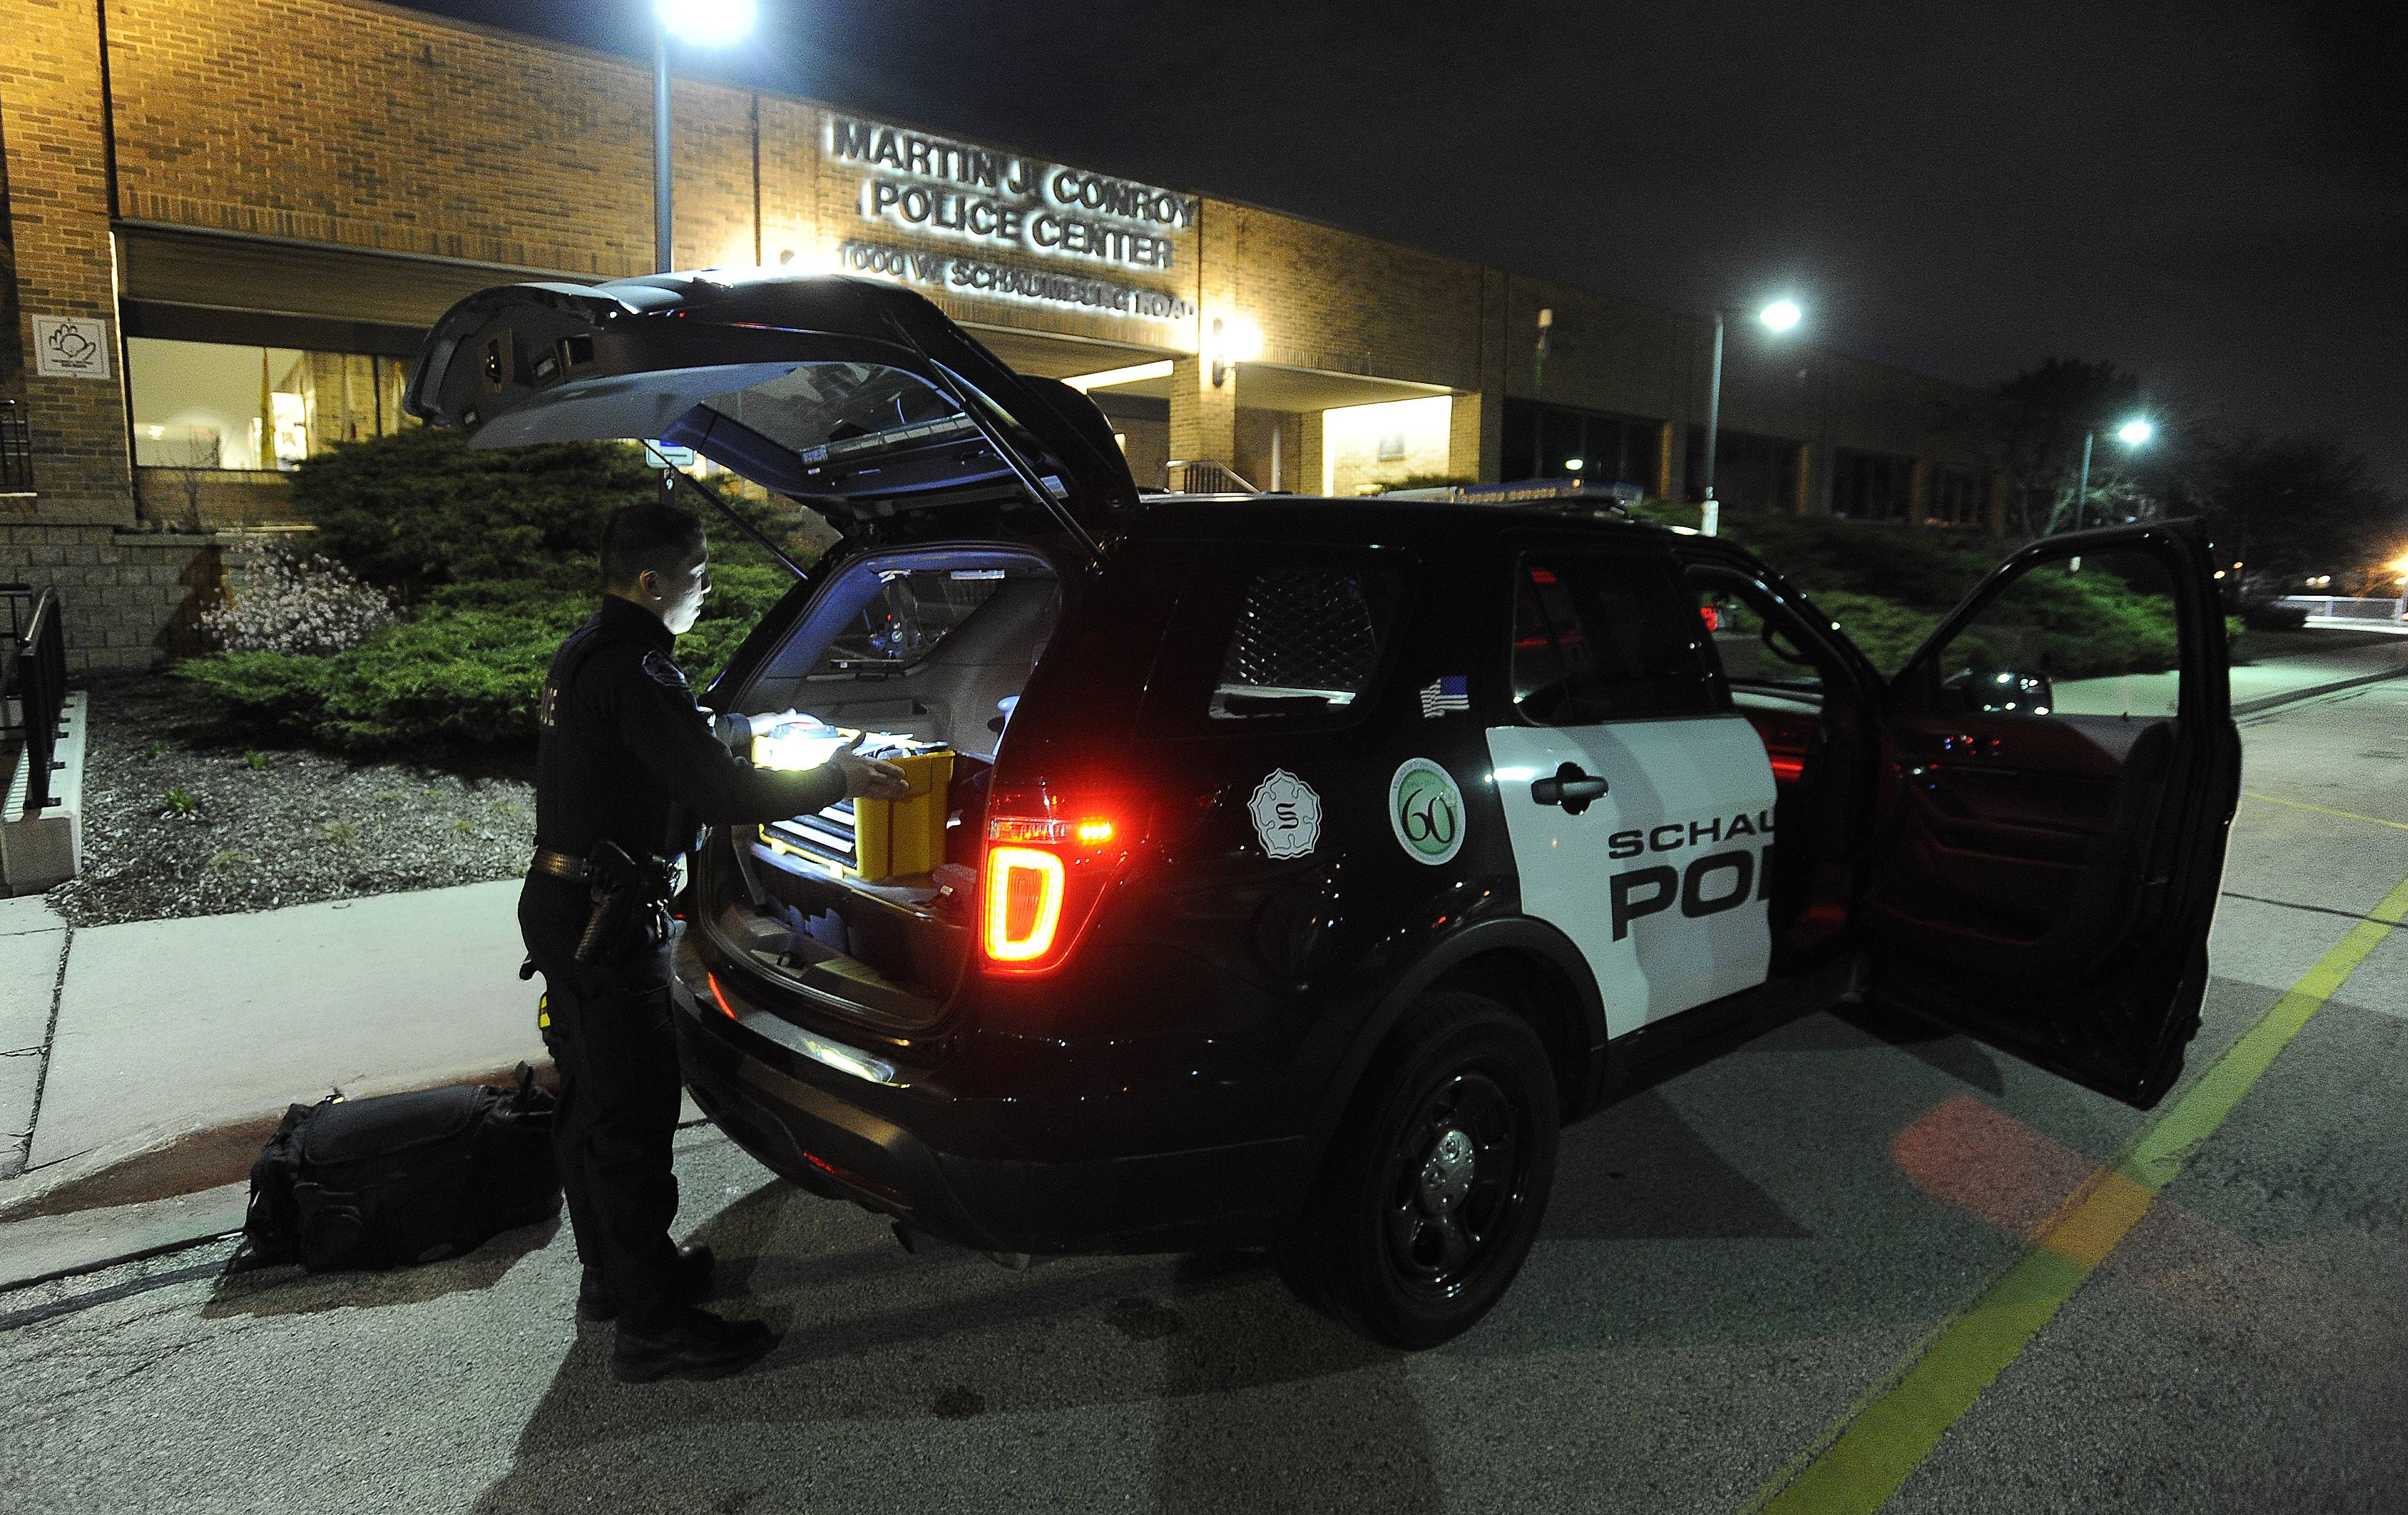 Eric Wang of Chicago, who has been with the Schaumburg Police Department for just under two years, is also a hostage negotiator with the regional SWAT team. In the early morning hours Wang checks his gear as he heads out to patrol the streets of Schaumburg.